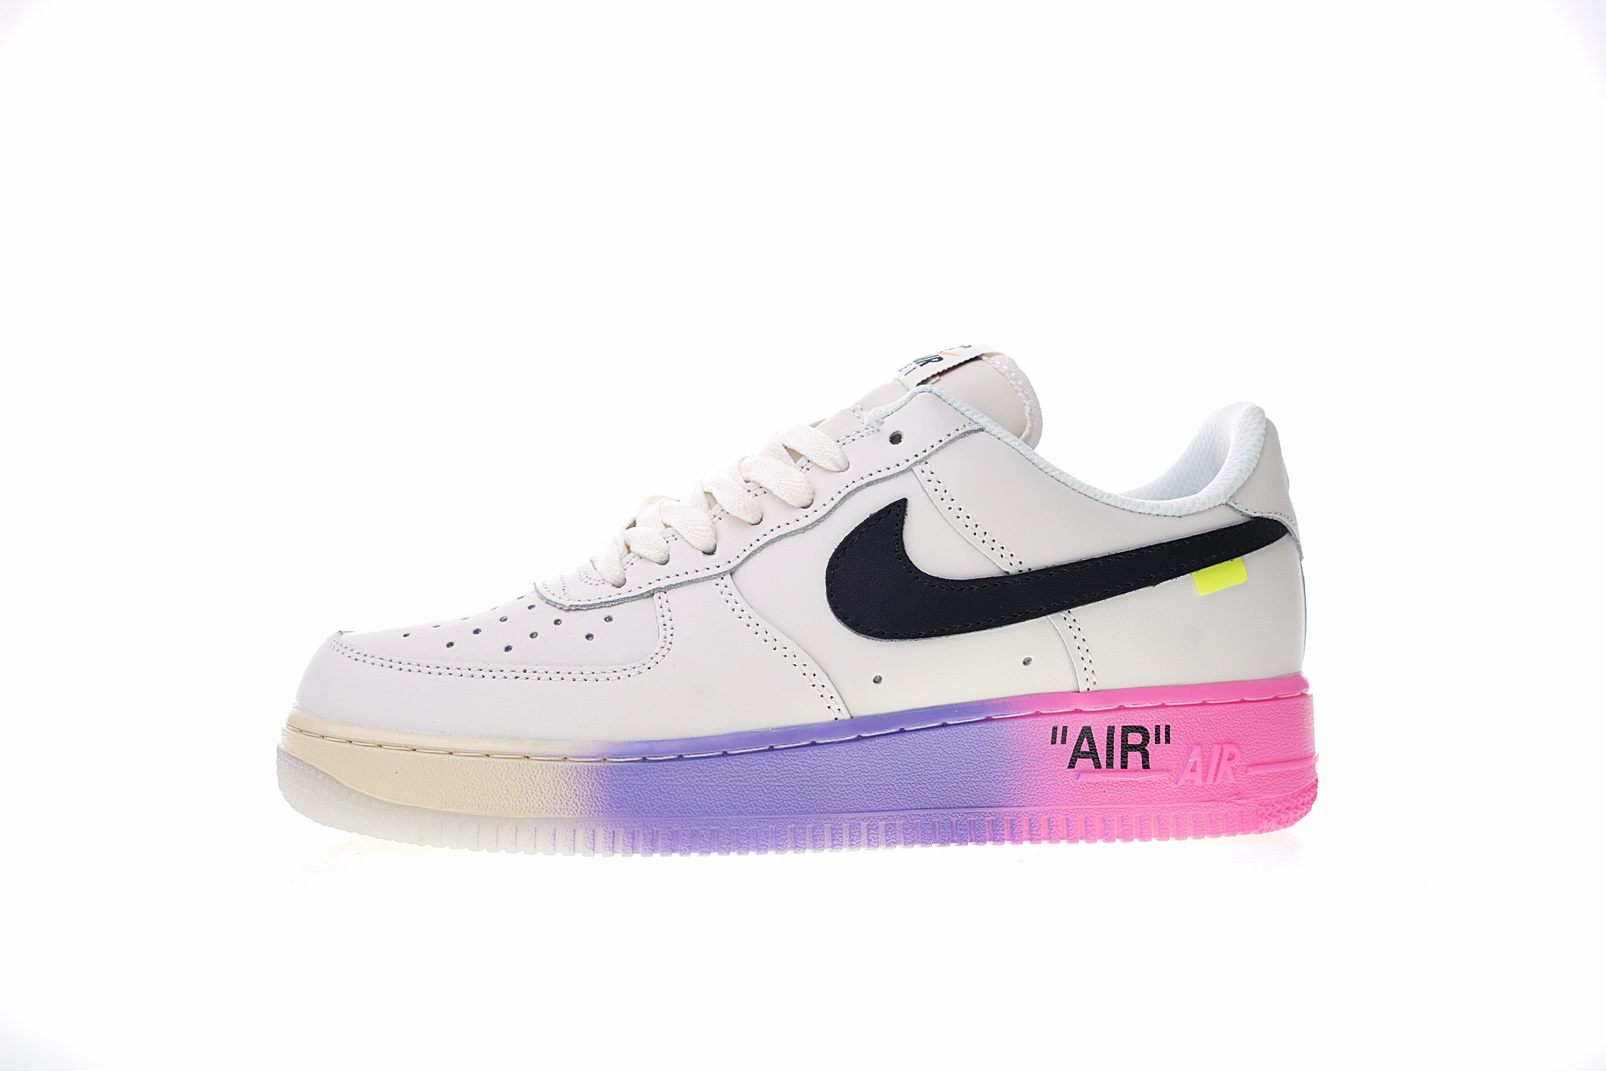 943a822a Off-White x Nike Air Force 1 Low 'Queen' Off-White x Nike 28056 ...